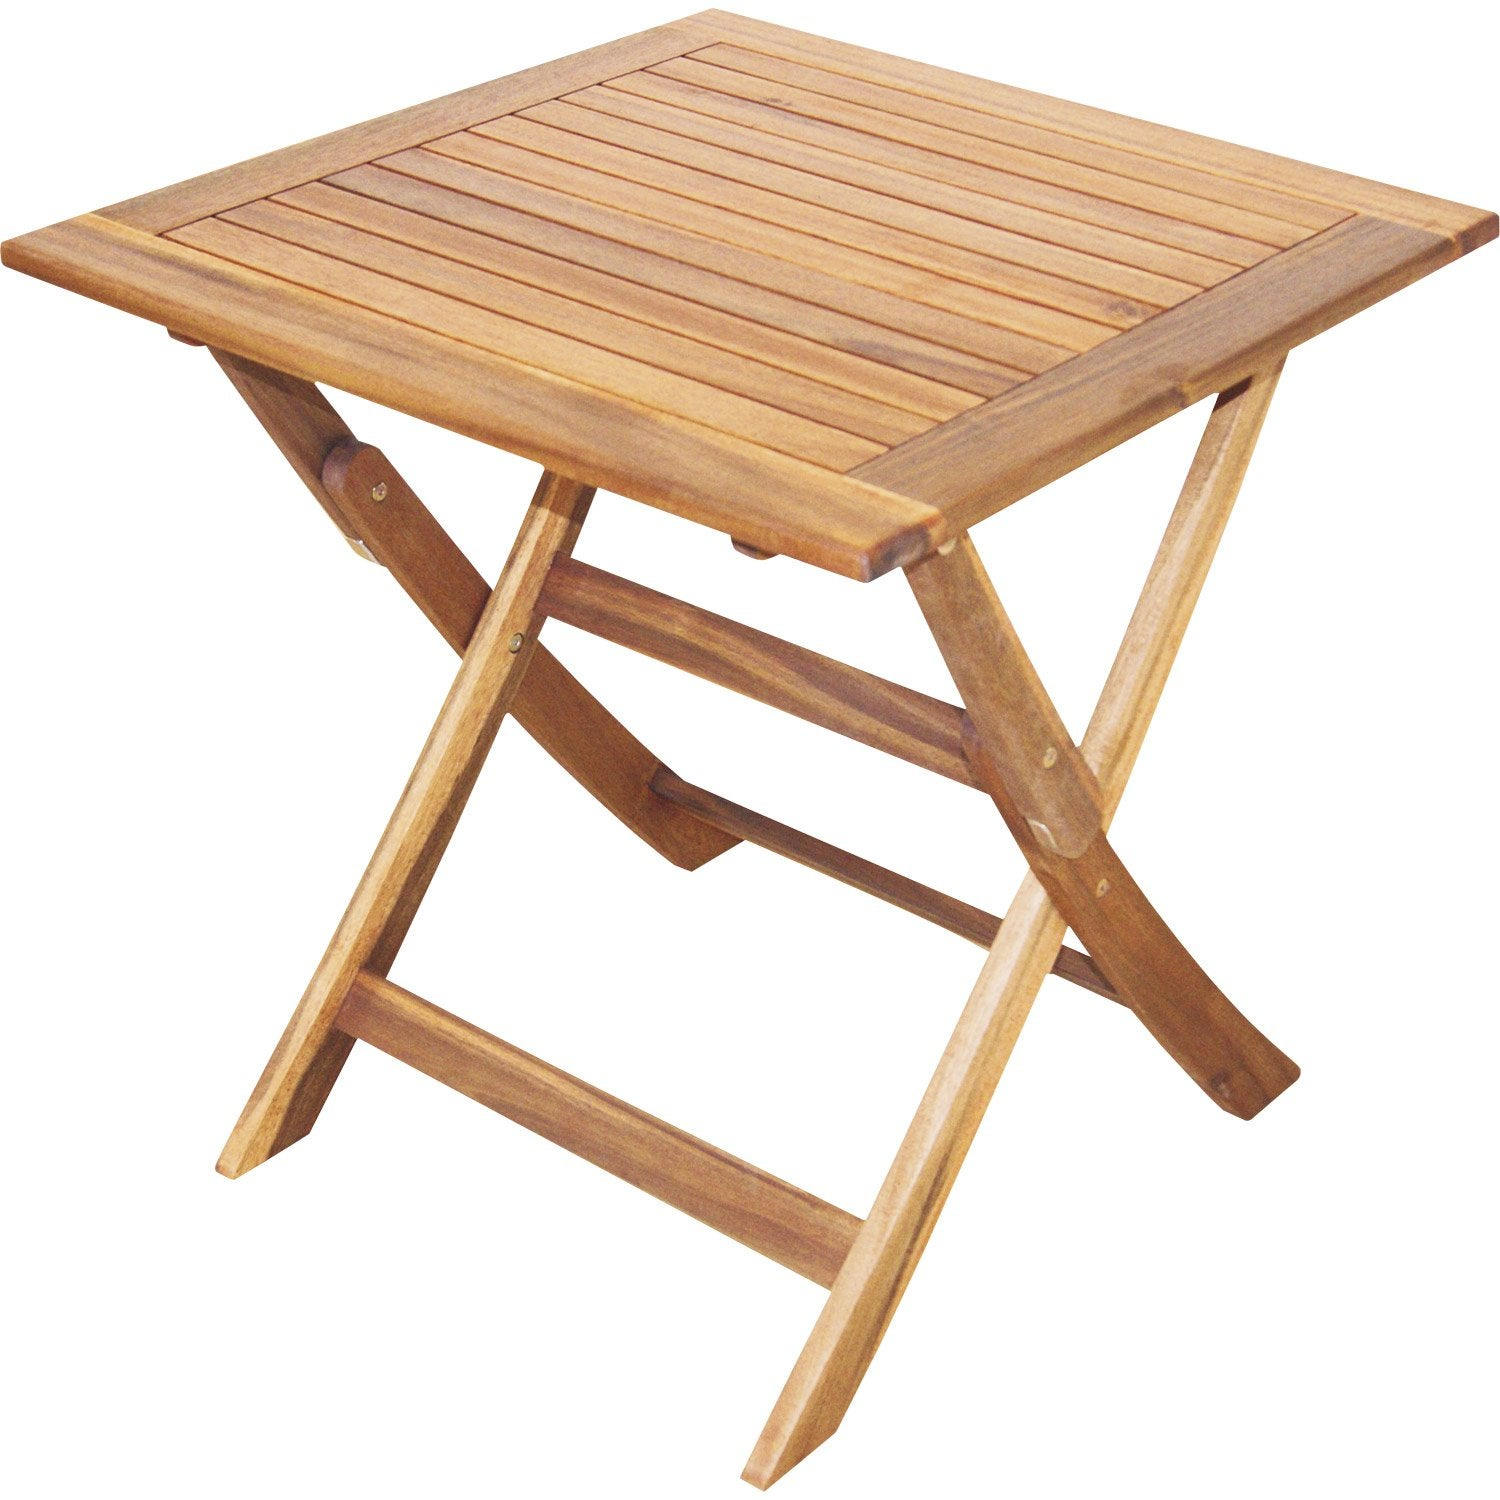 Table de jardin naterial porto carr e miel leroy merlin for Table carree 70x70 extensible